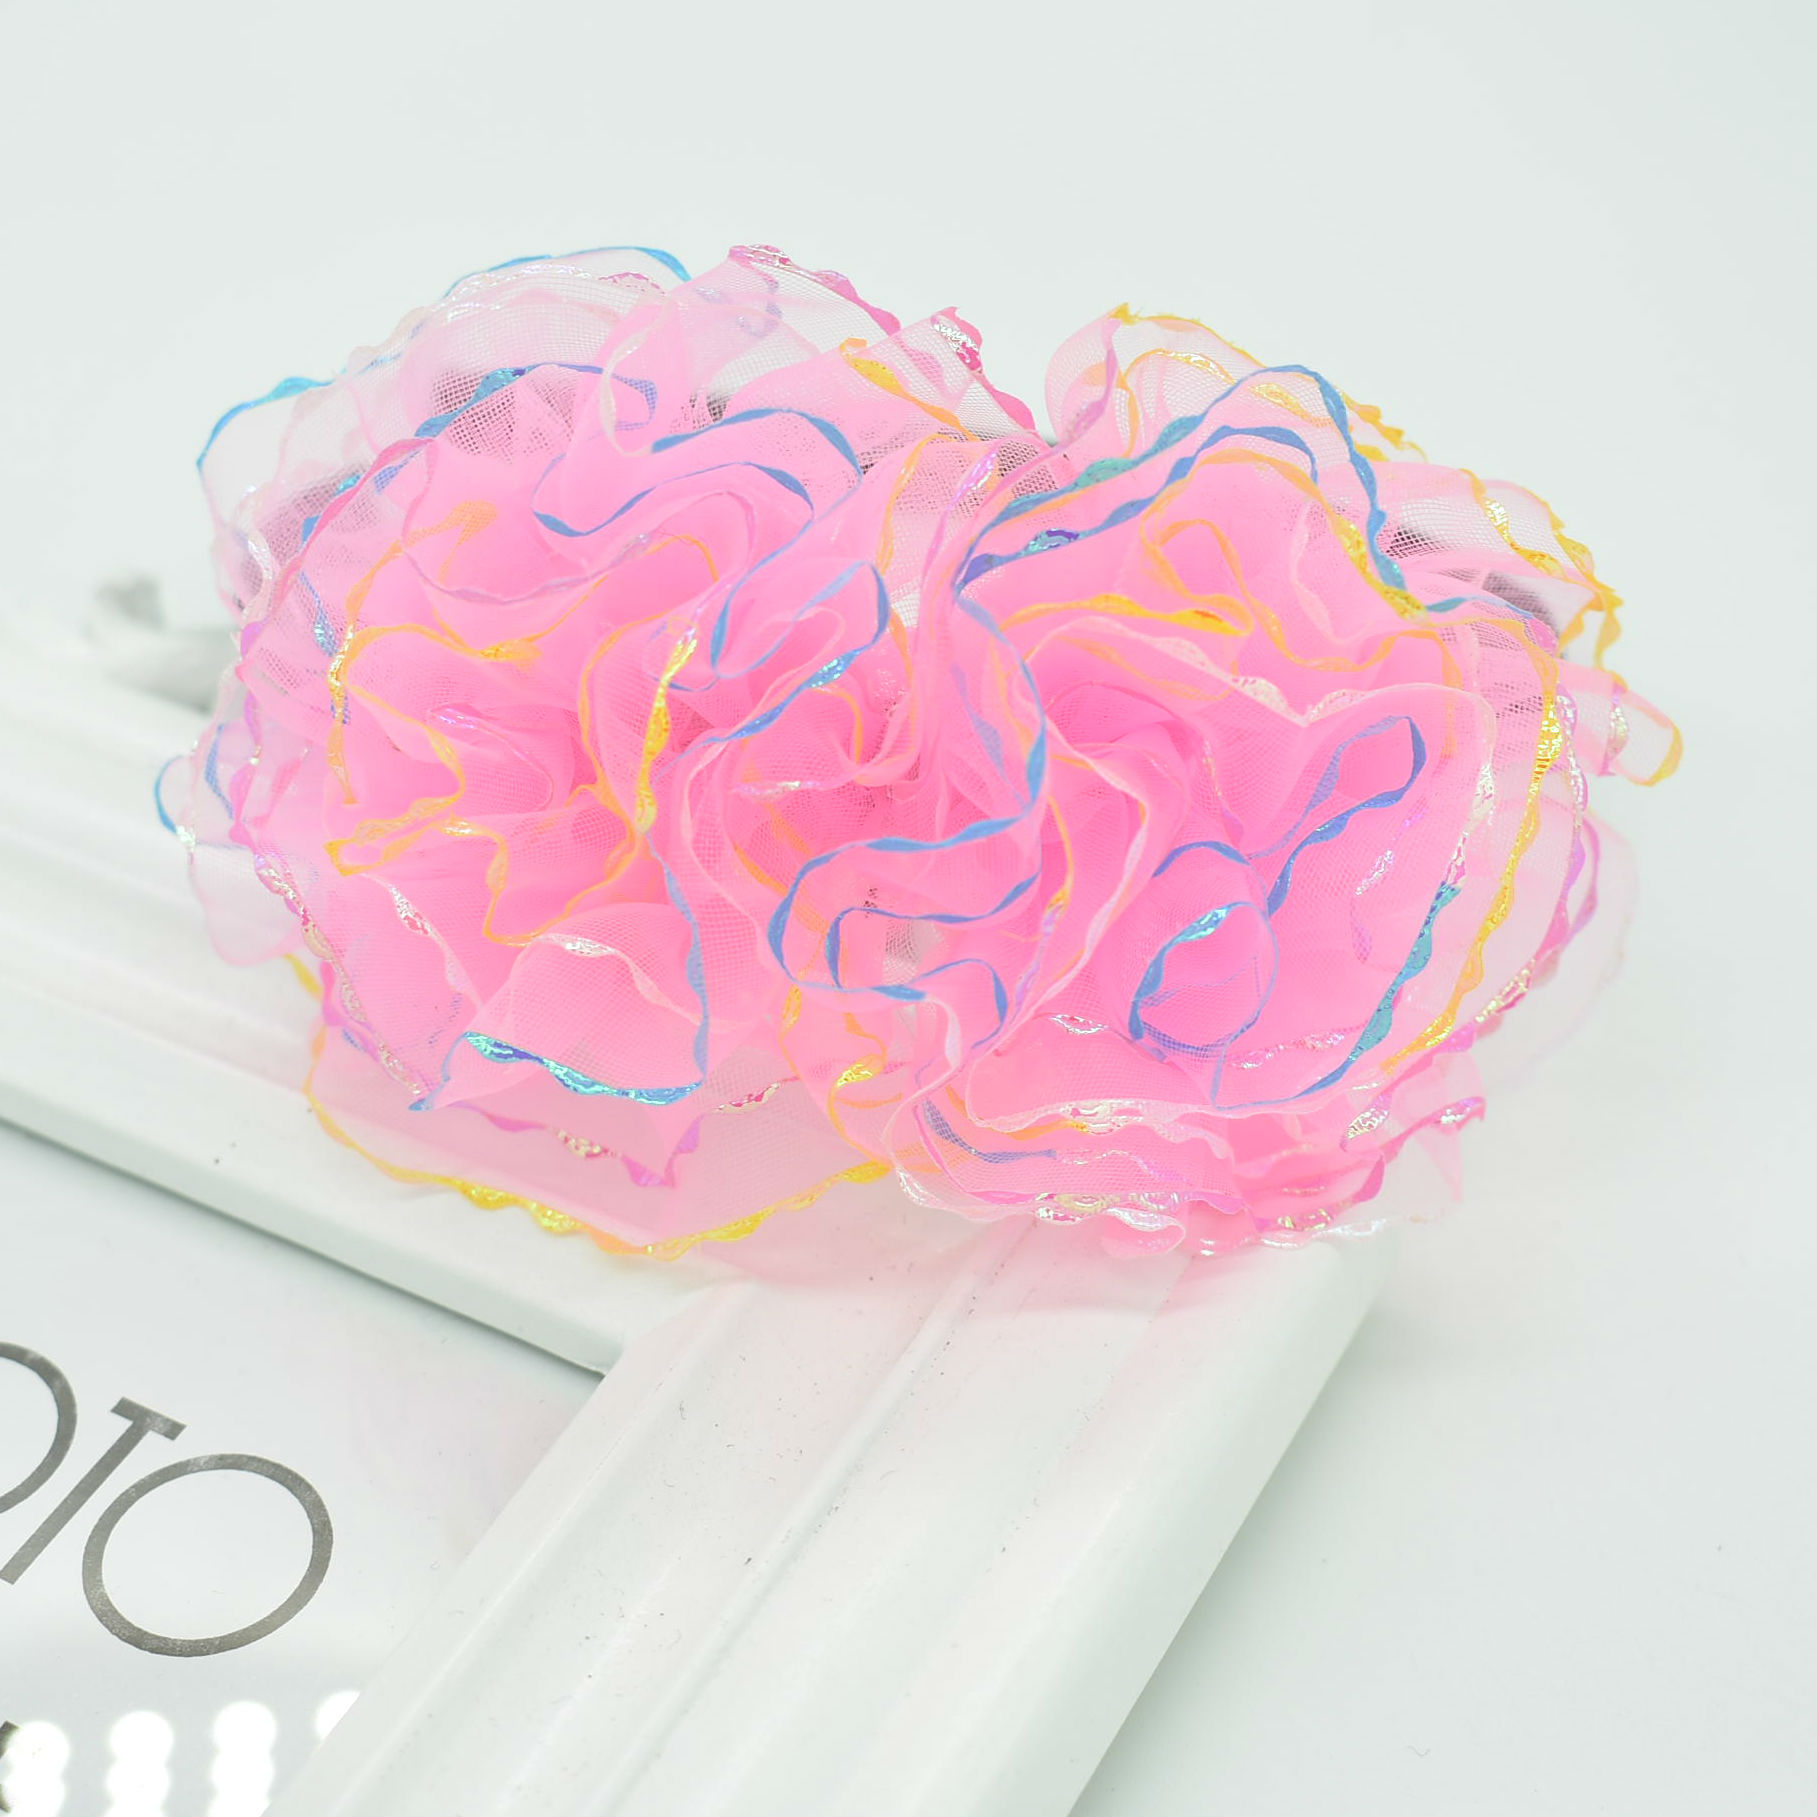 New product Children's lace headband Kids colorful transparent Flower hair accessories Wavy lace hair accessory